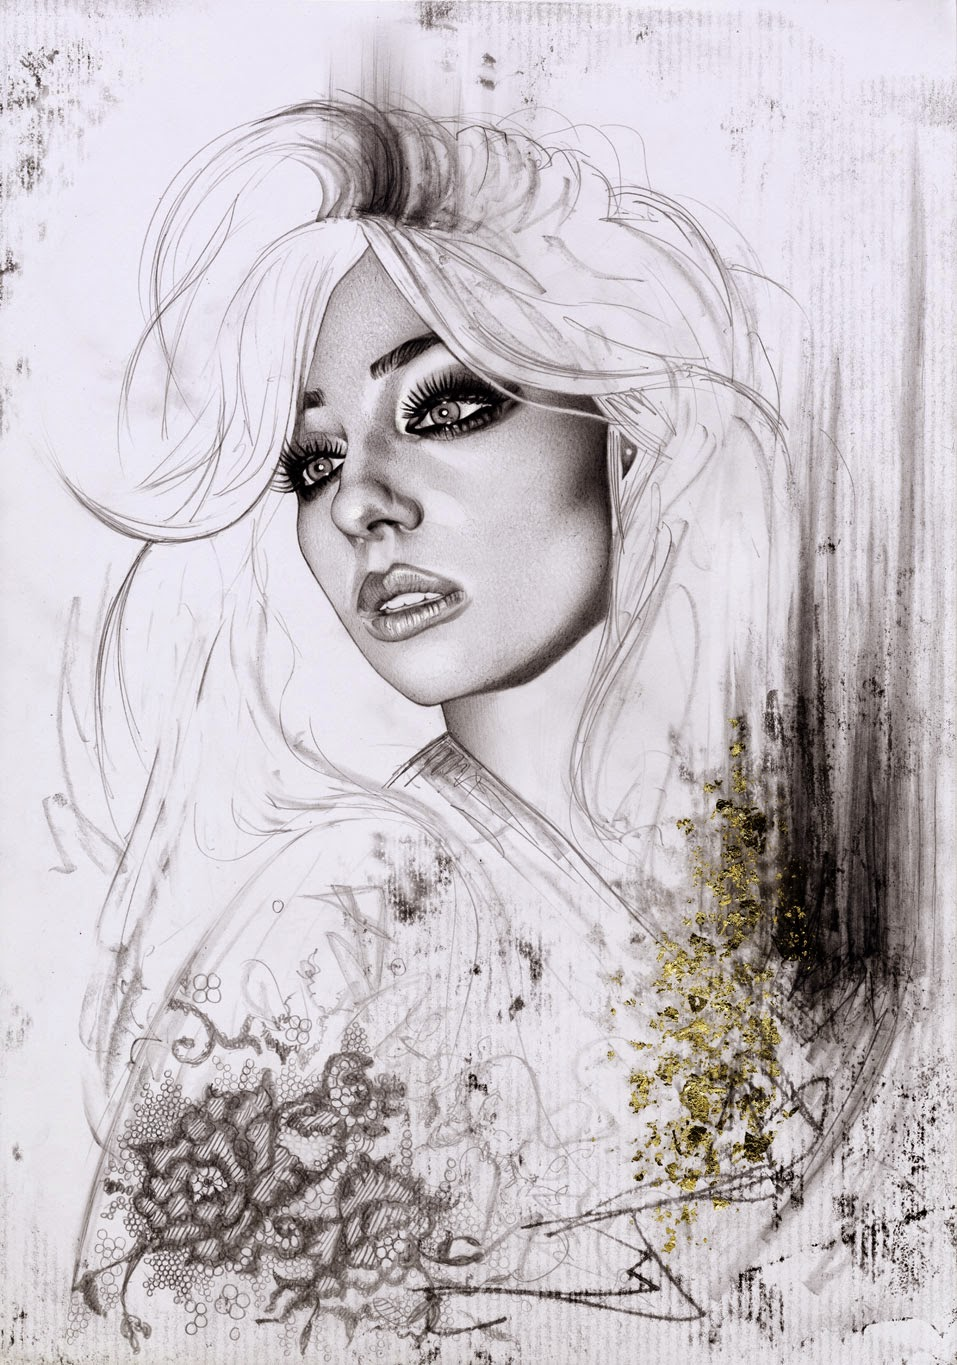 Easy Sketches In Pencil together with Sketchbook Artwork Mockup furthermore Implement In Business Clipart besides Artist Paints Rihanna Portraits On Skin 2017 12 additionally Ape Mutant 350936775. on realistic sketches